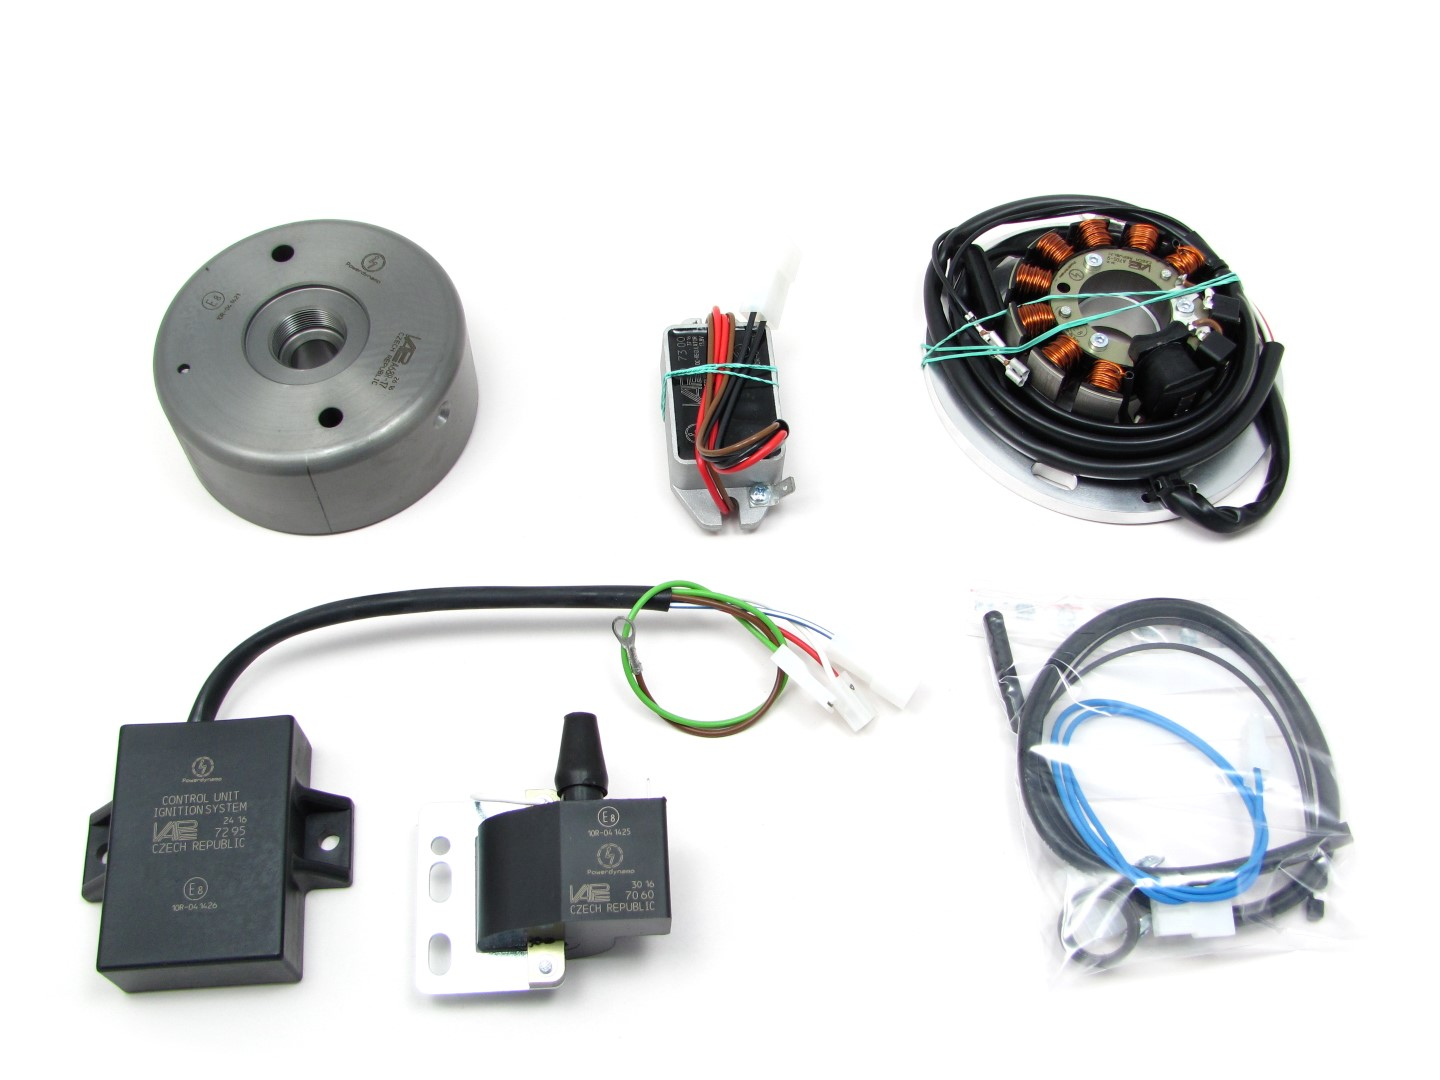 magnet based generator with integrated solid state ignition  replaces all  original generator and ignition parts  updates your system to 12v/180w dc